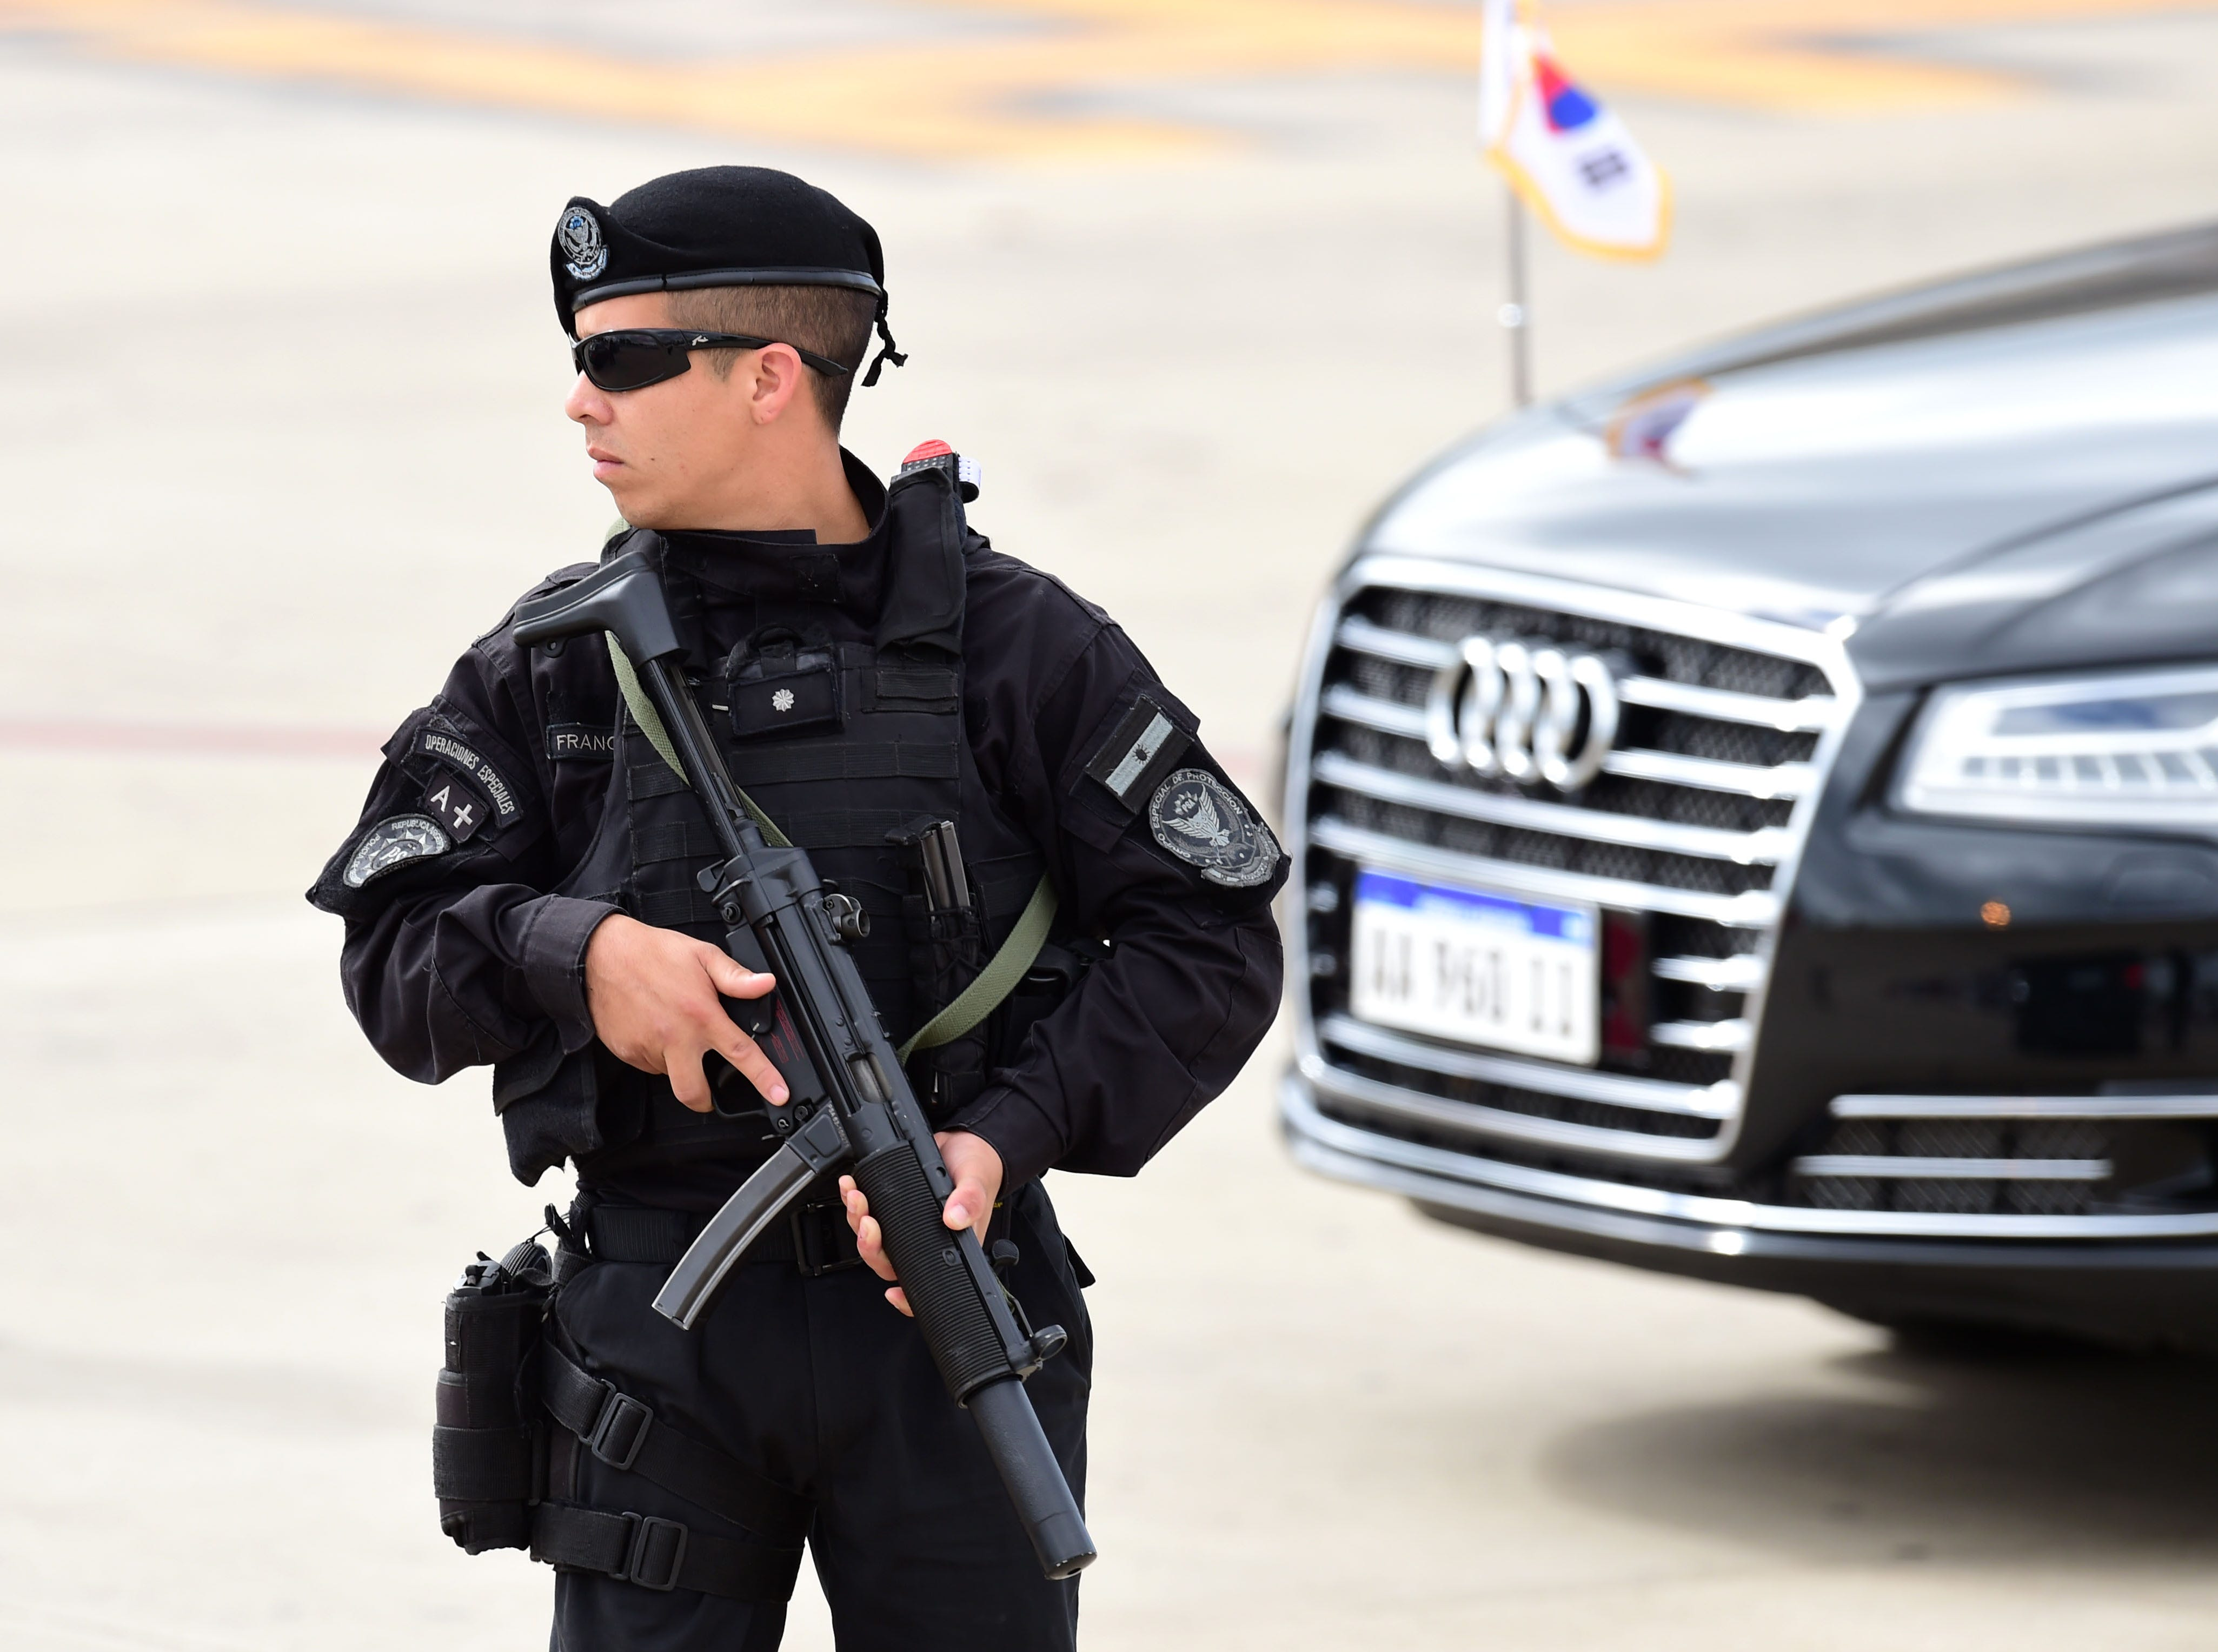 An Argentinian police special operations officer stands guard before the arrival of South Korea's President Moon Jae-in at Ezeiza International airport in Buenos Aires province, on November 29, 2018. - Global leaders gather in the Argentine capital for a two-day G20 summit beginning on Friday likely to be dominated by simmering international tensions over trade. (Photo by Martin BERNETTI / AFP)        (Photo credit should read MARTIN BERNETTI/AFP/Getty Images)